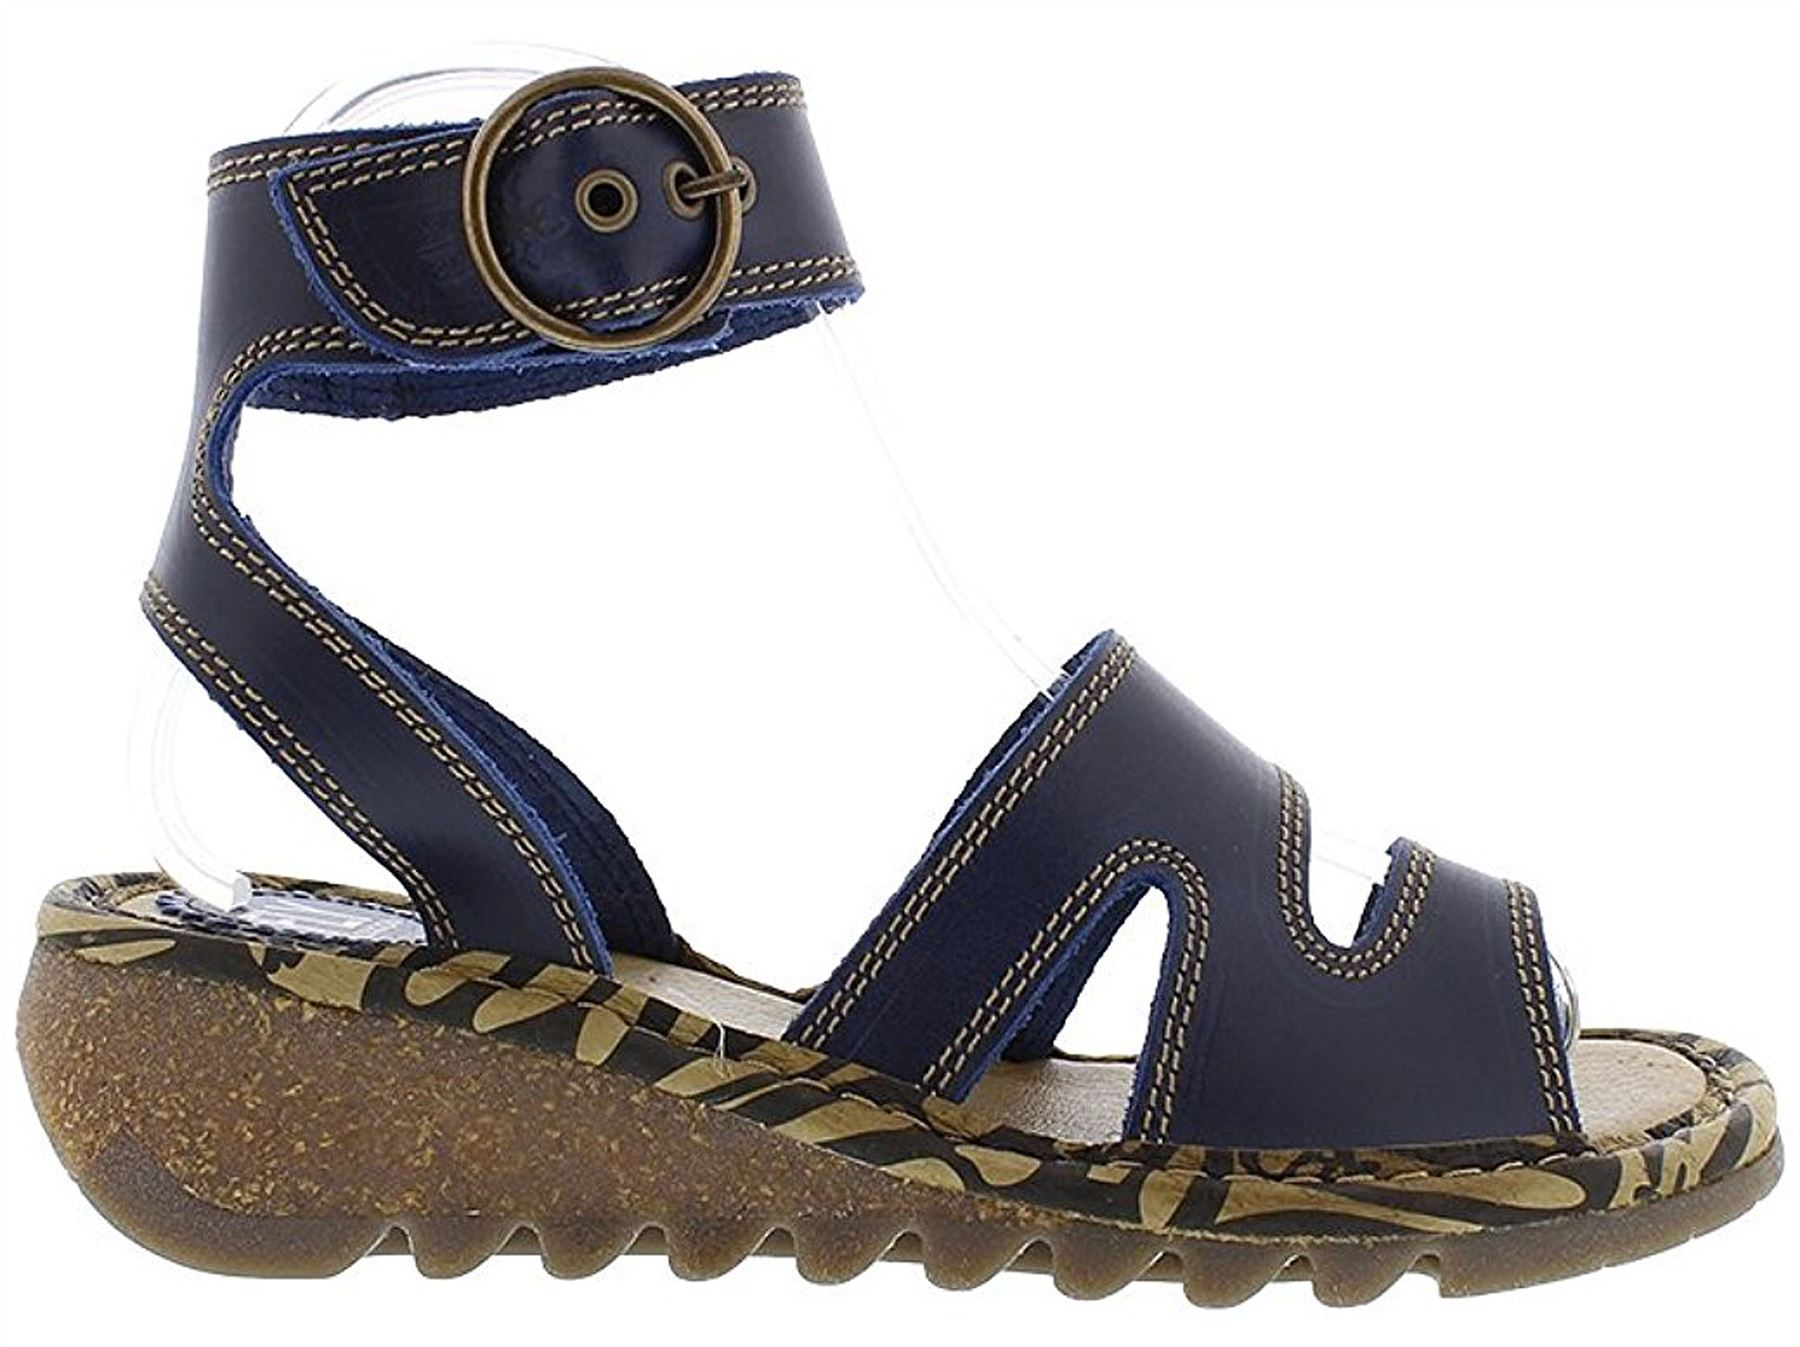 Fly-London-TILY722FLY-Ladies-Strappy-Gladiator-Style-Leather-Wedge-Sandals thumbnail 10